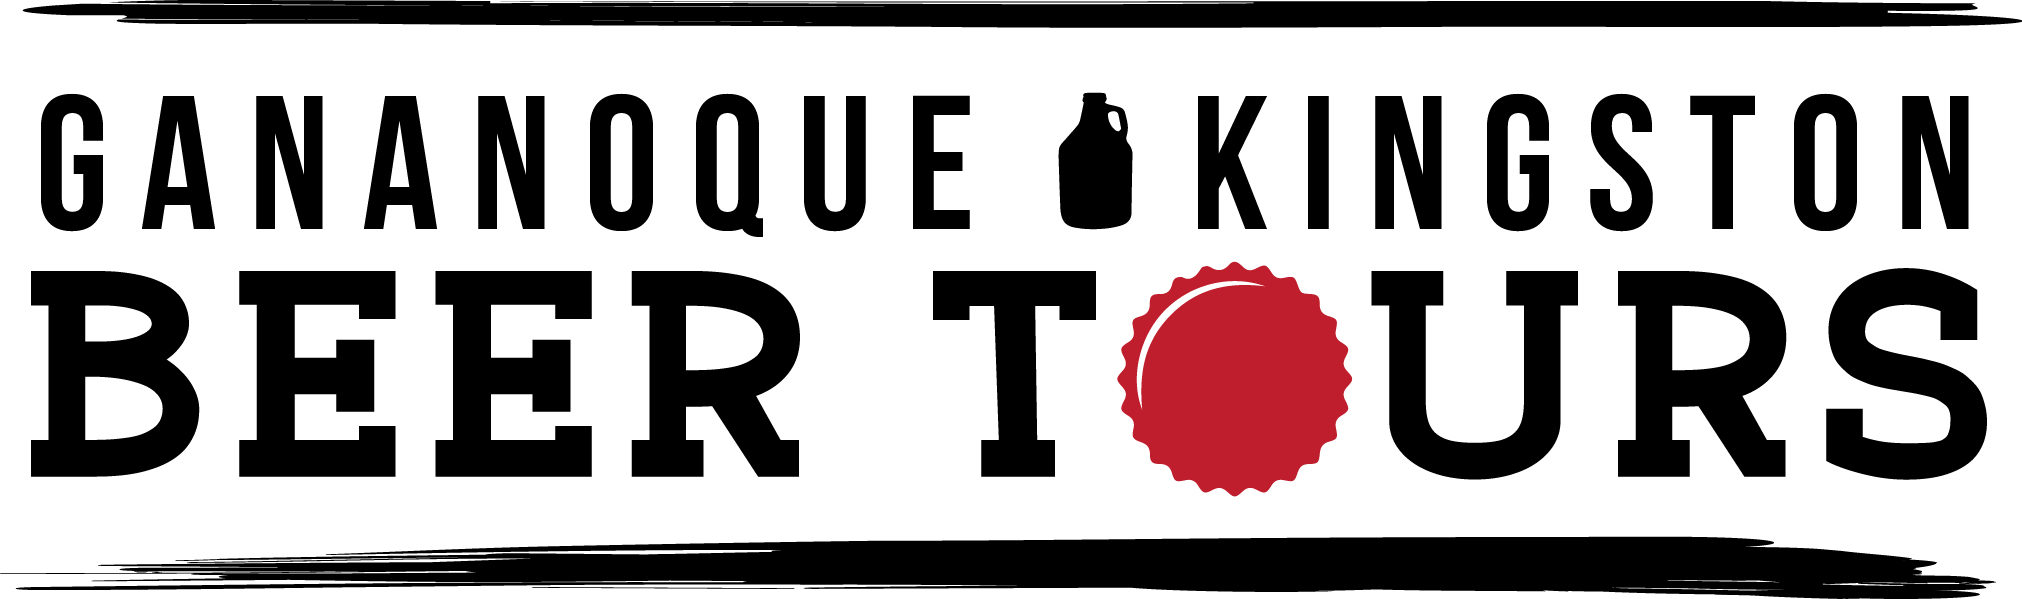 Kingston Gananoque Beer Tours Featured Image